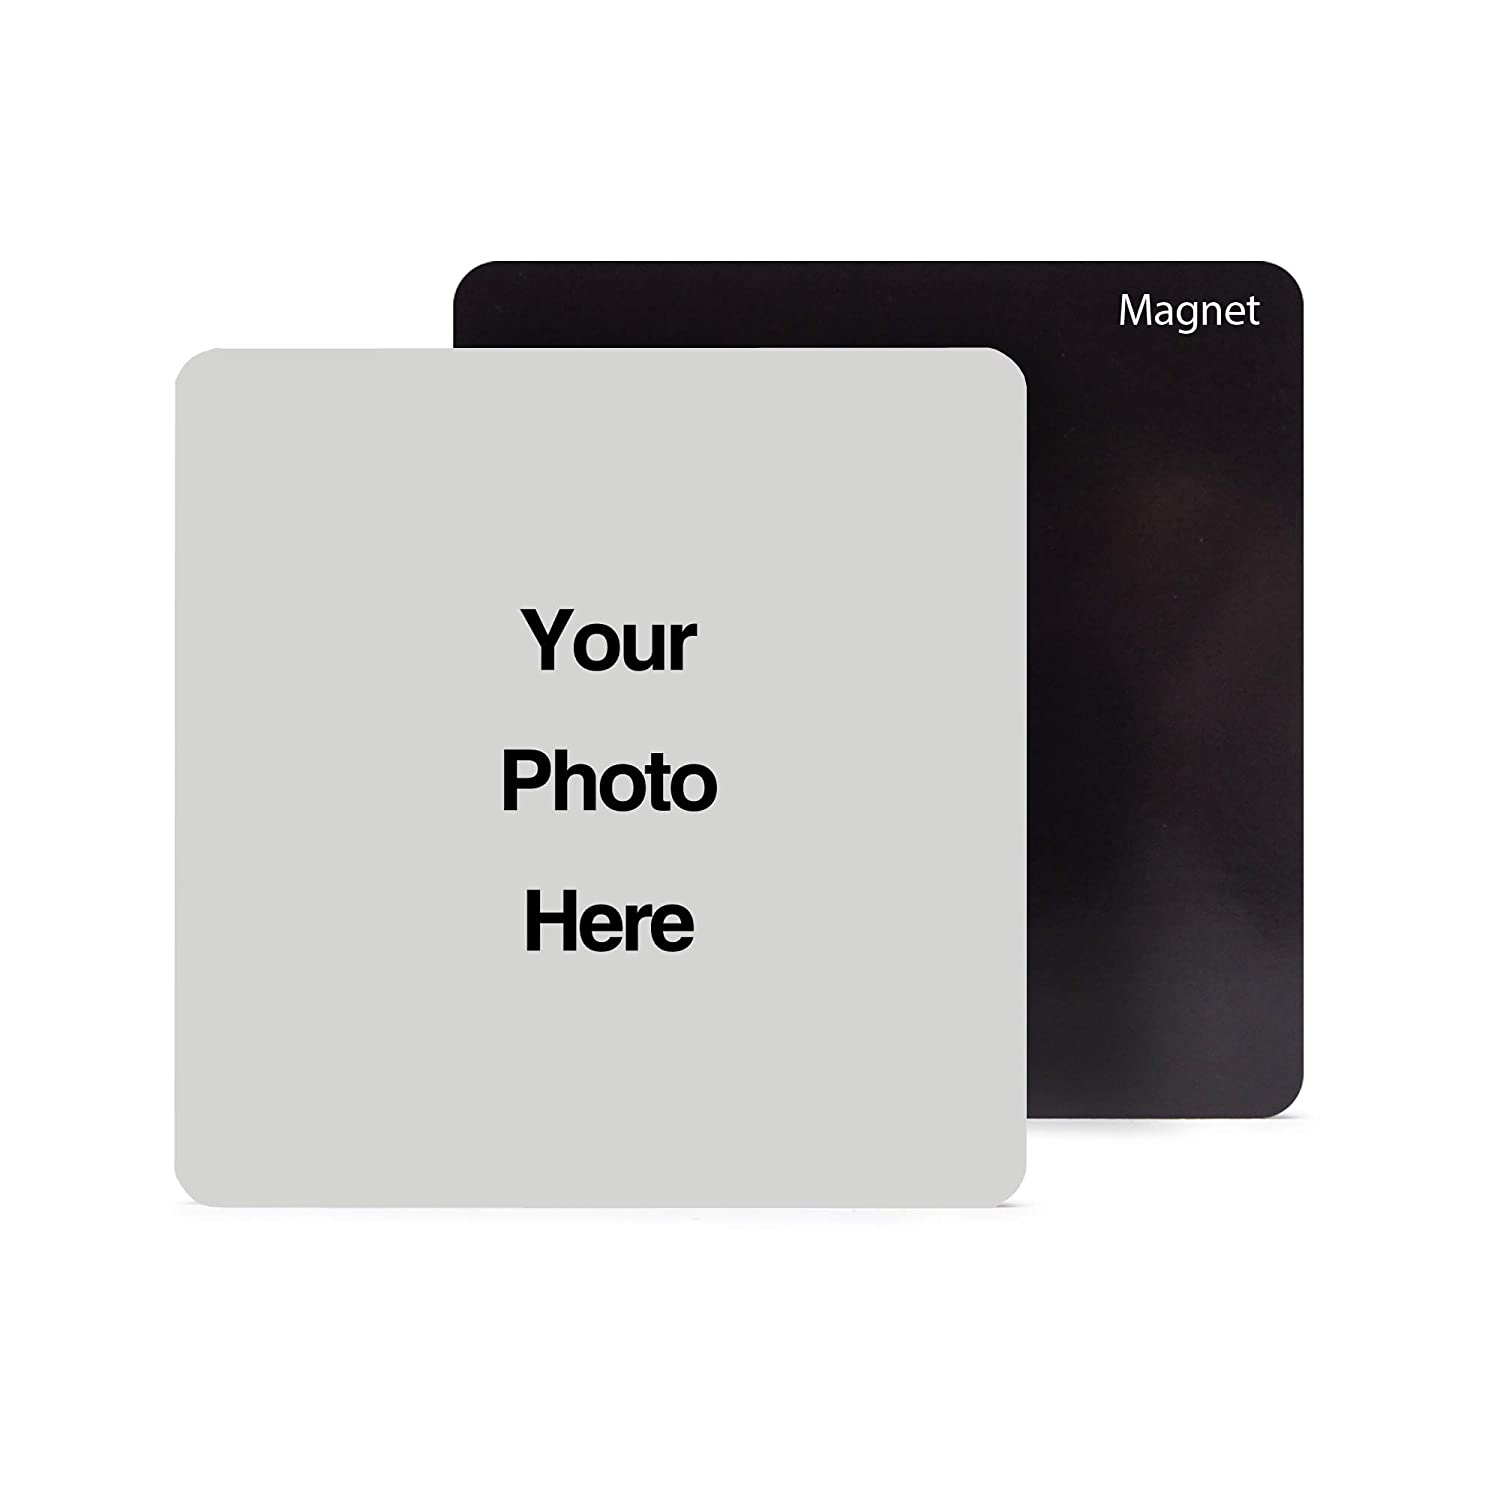 """Pearl Pix Custom Picture Magnet, Personalized Photo, 3.5"""" x 3.5"""" Picture Magnet, Great Gift for Any Occasion - Make Your Own Picture Magnet"""